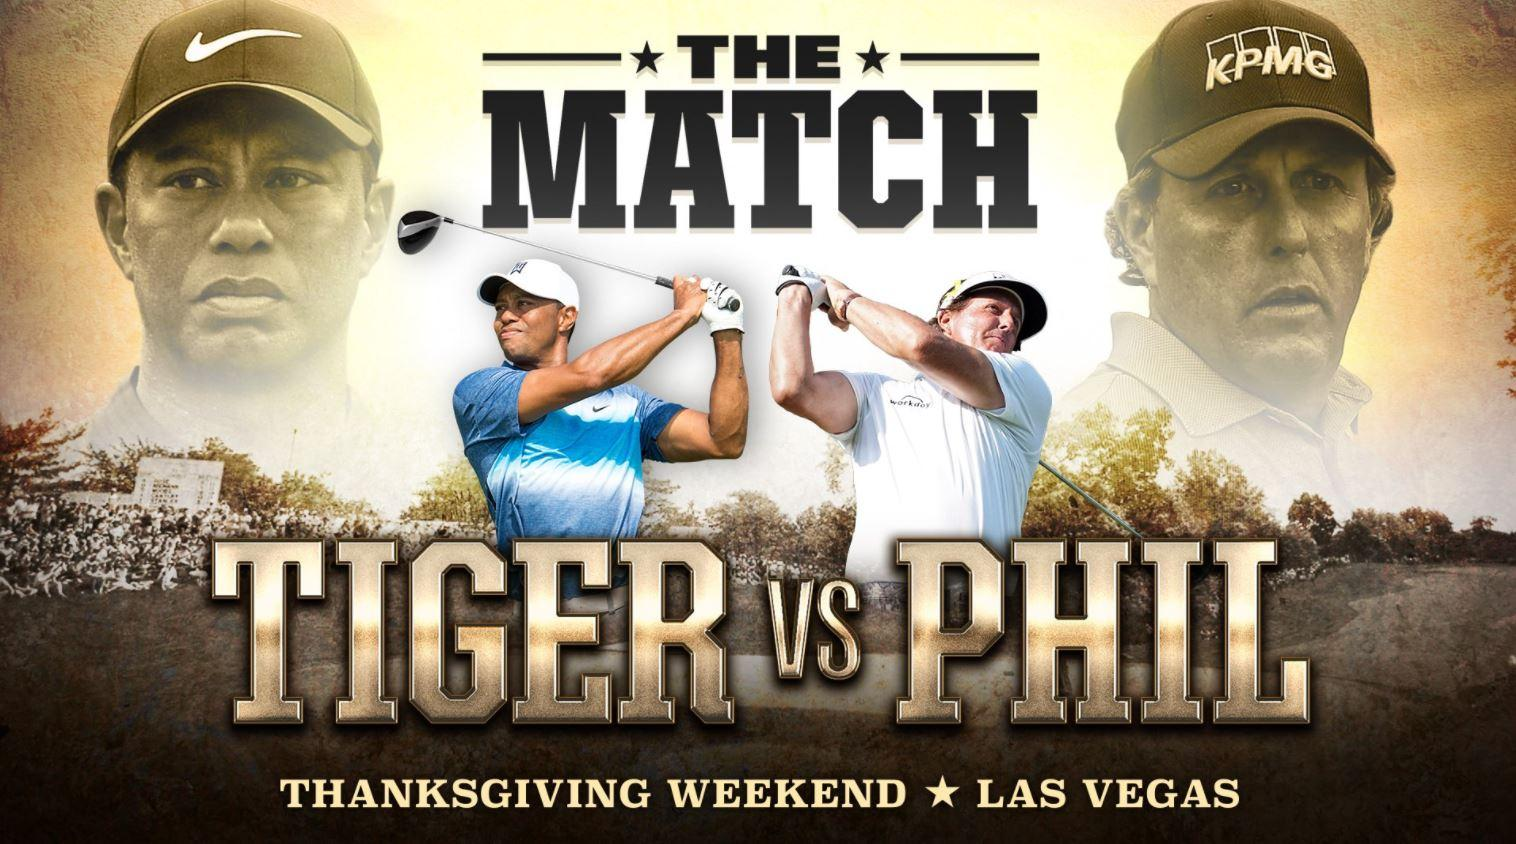 Tiger Woods confirmed he will face Phil Mickelson in Las Vegas in November